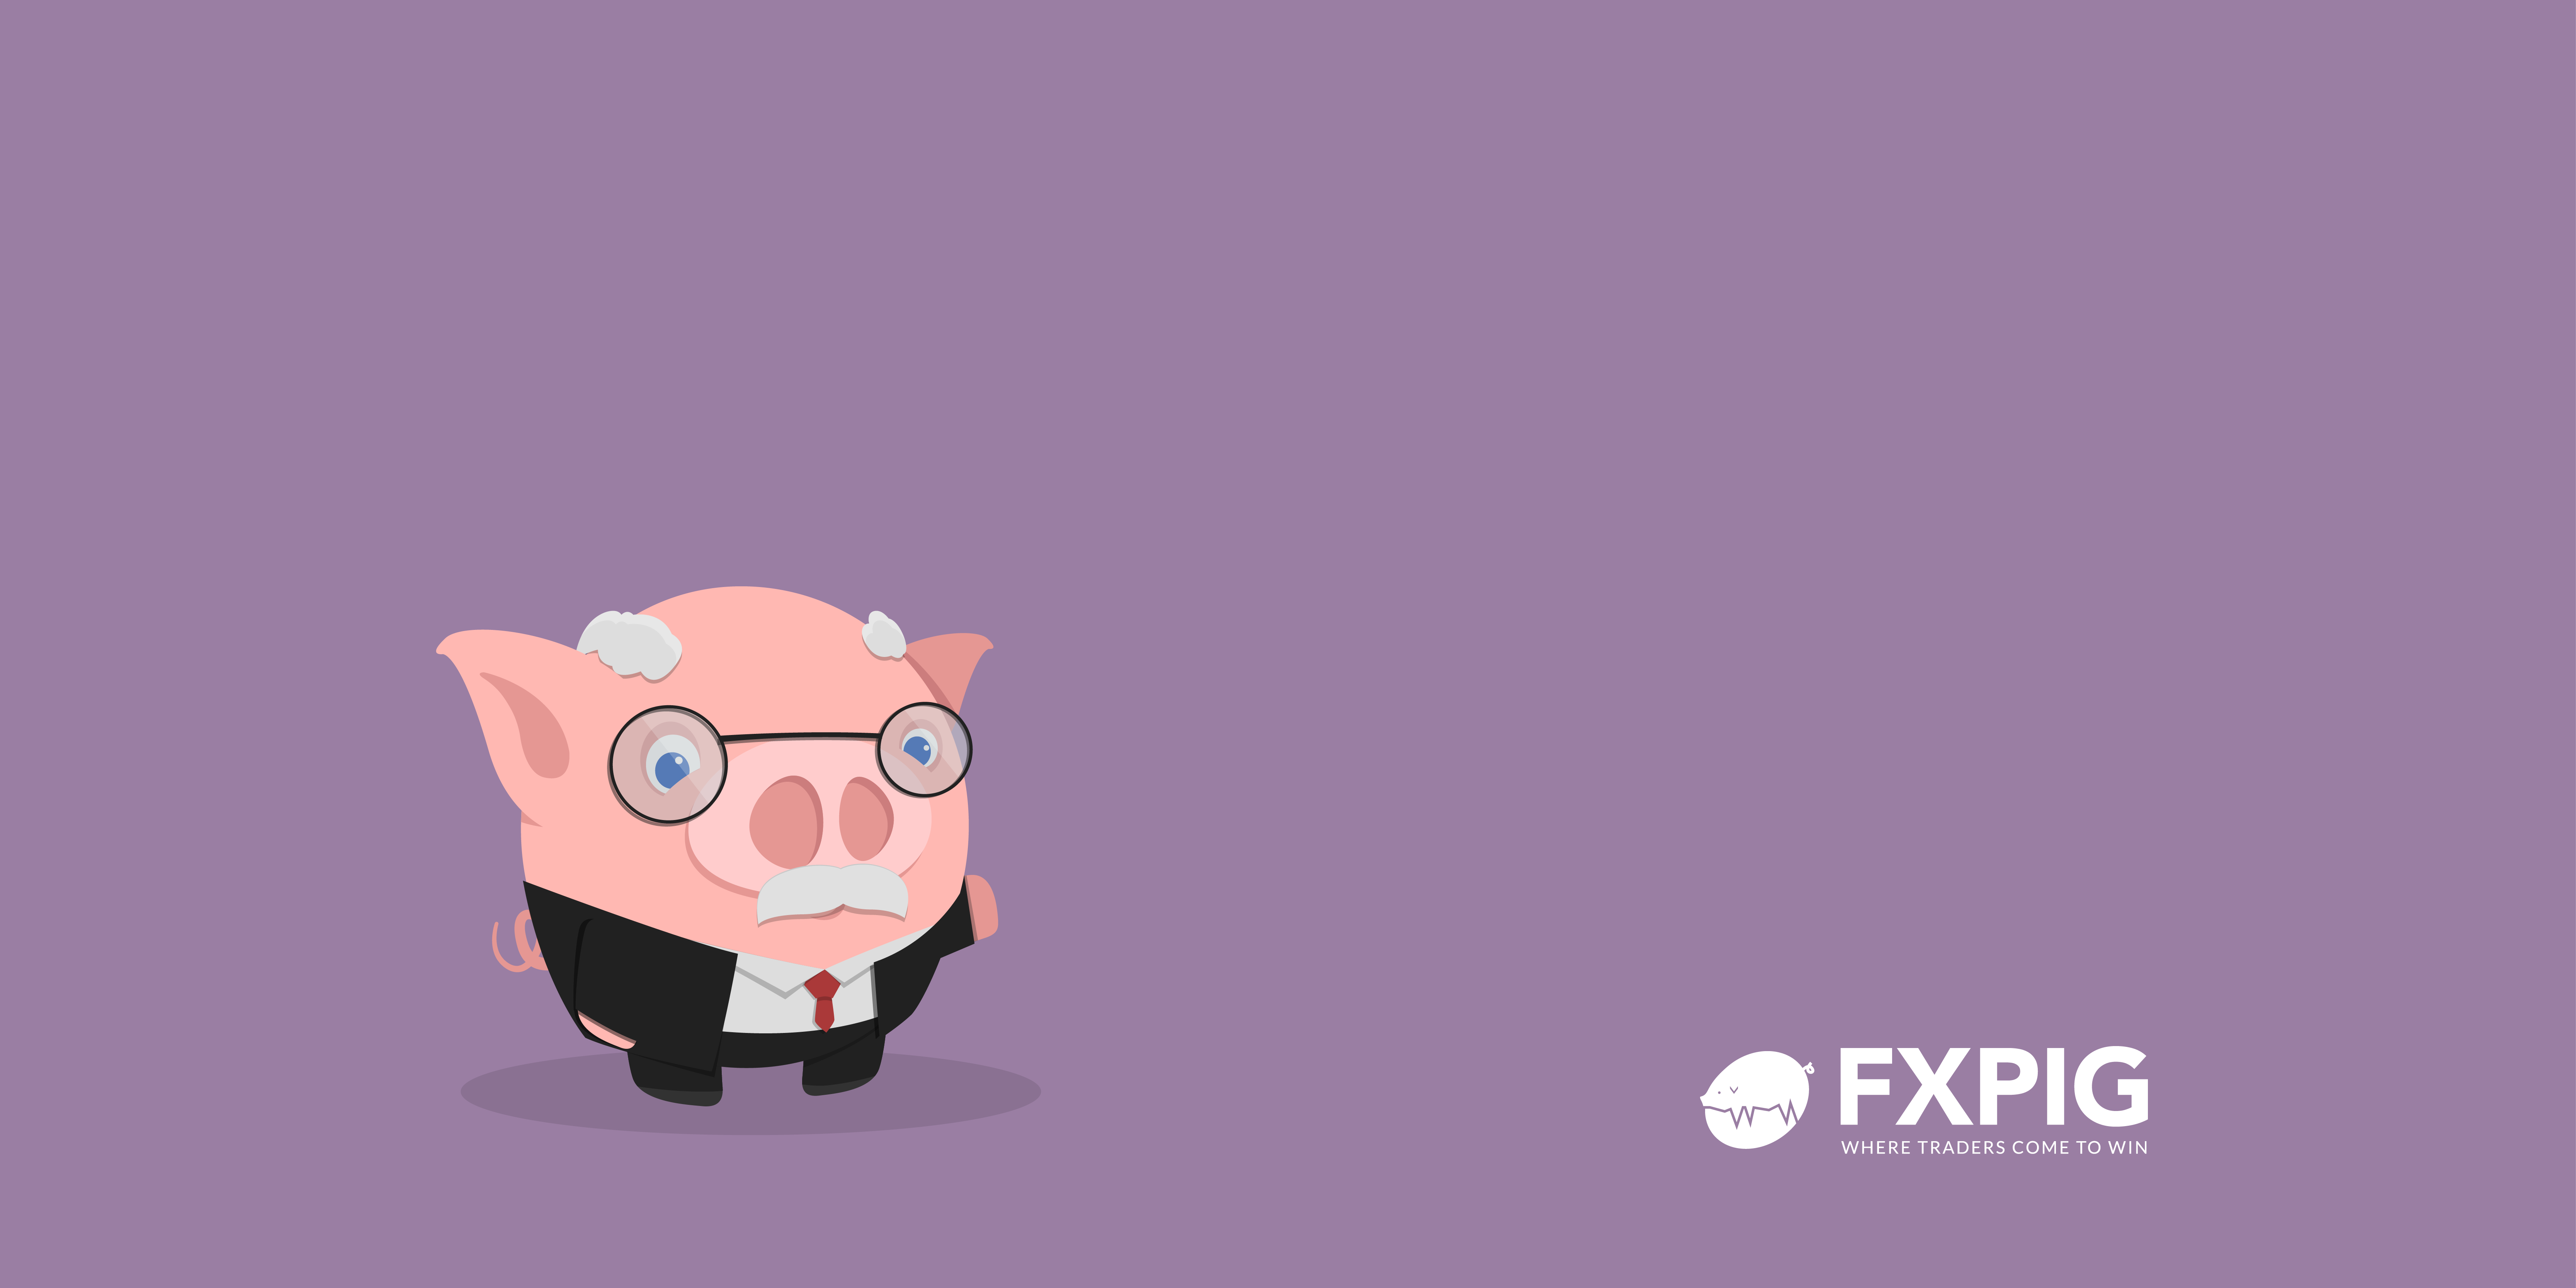 Forex_Trading_Fx_Trader_FXPIG_Forex-Trading-wisdom_Forex-Trading-Quotes_Control